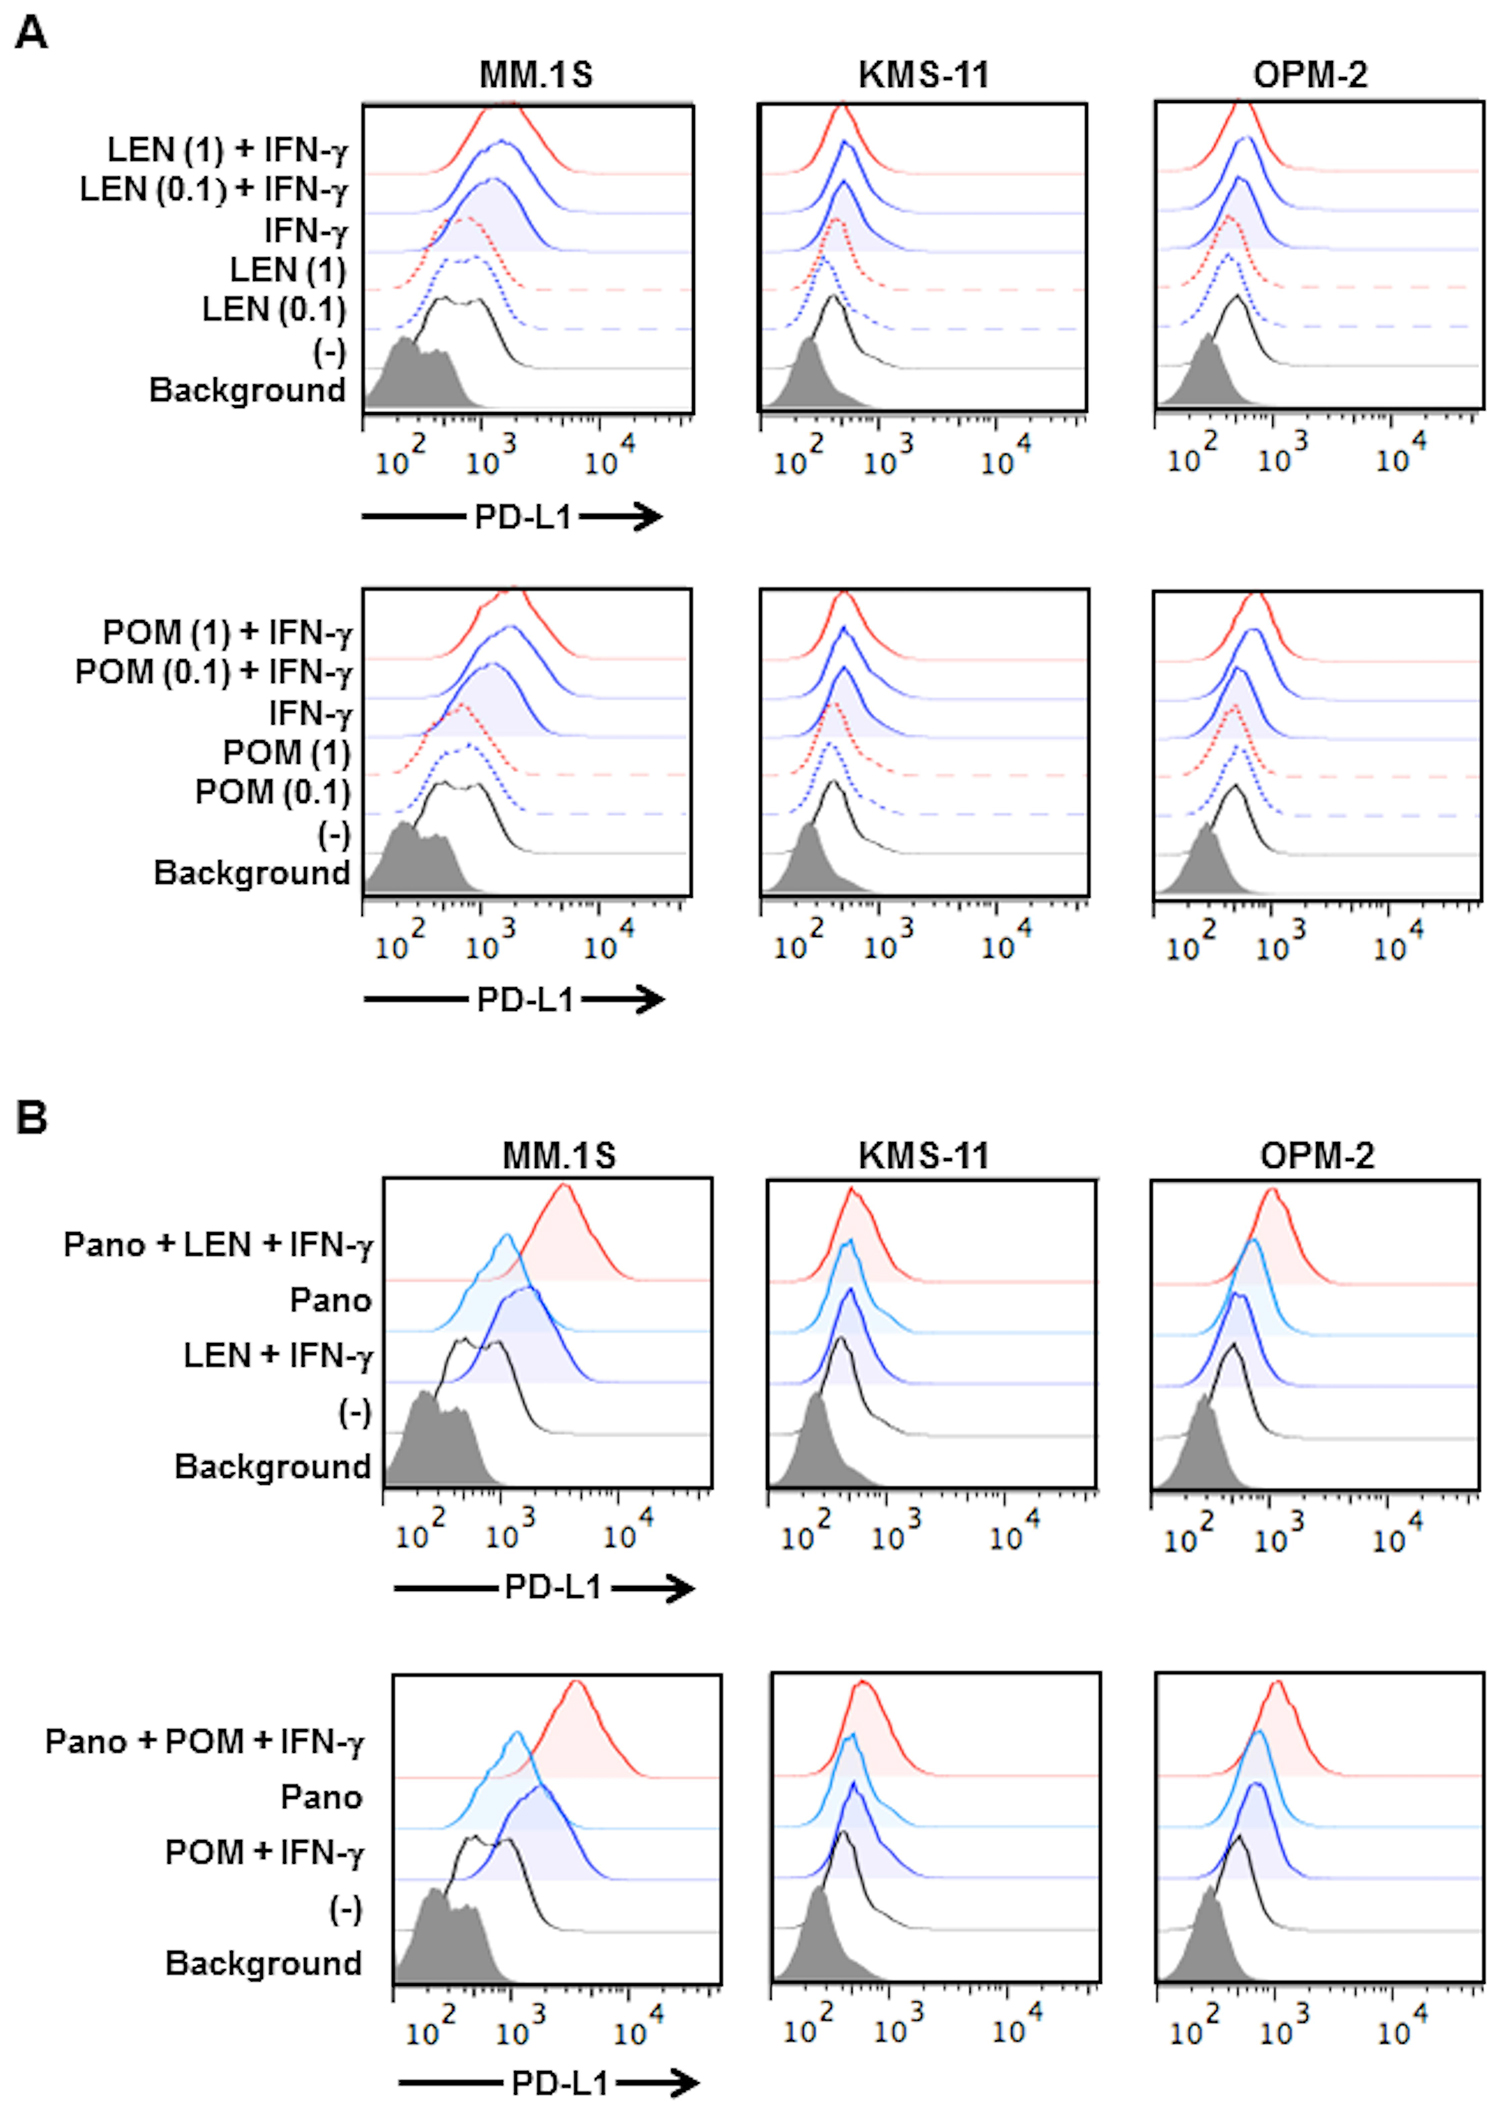 Effects of lenalidomide and pomalidomide on PD-L1 expression on MM cells.